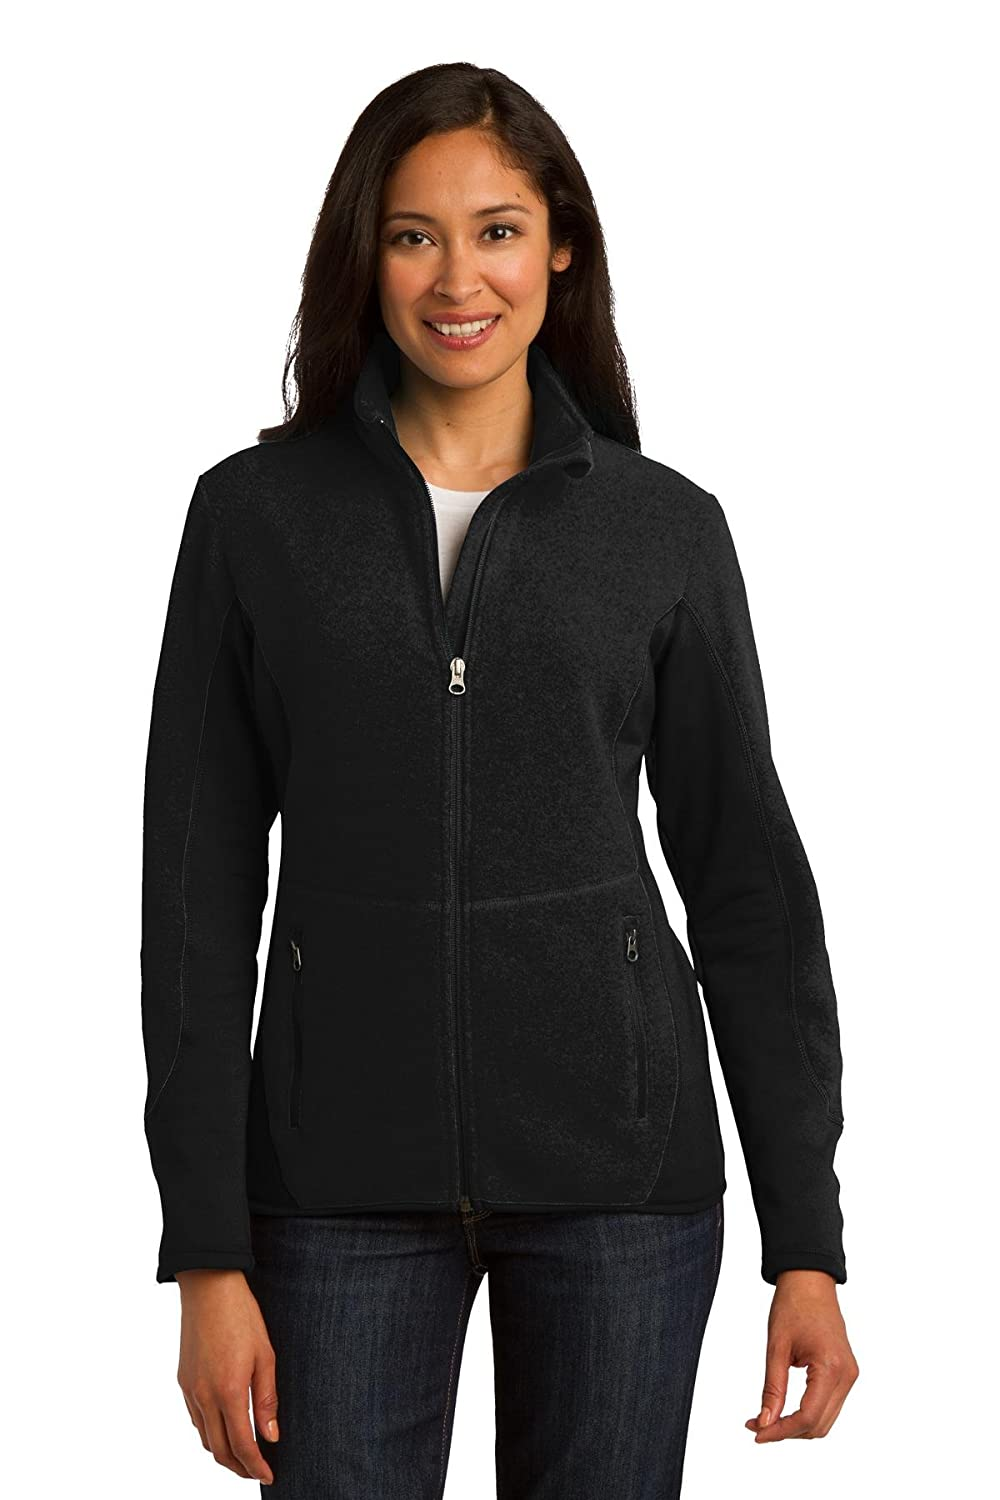 Port Authority Women's RTek Pro Fleece FullZip Jacket Port Authority L227